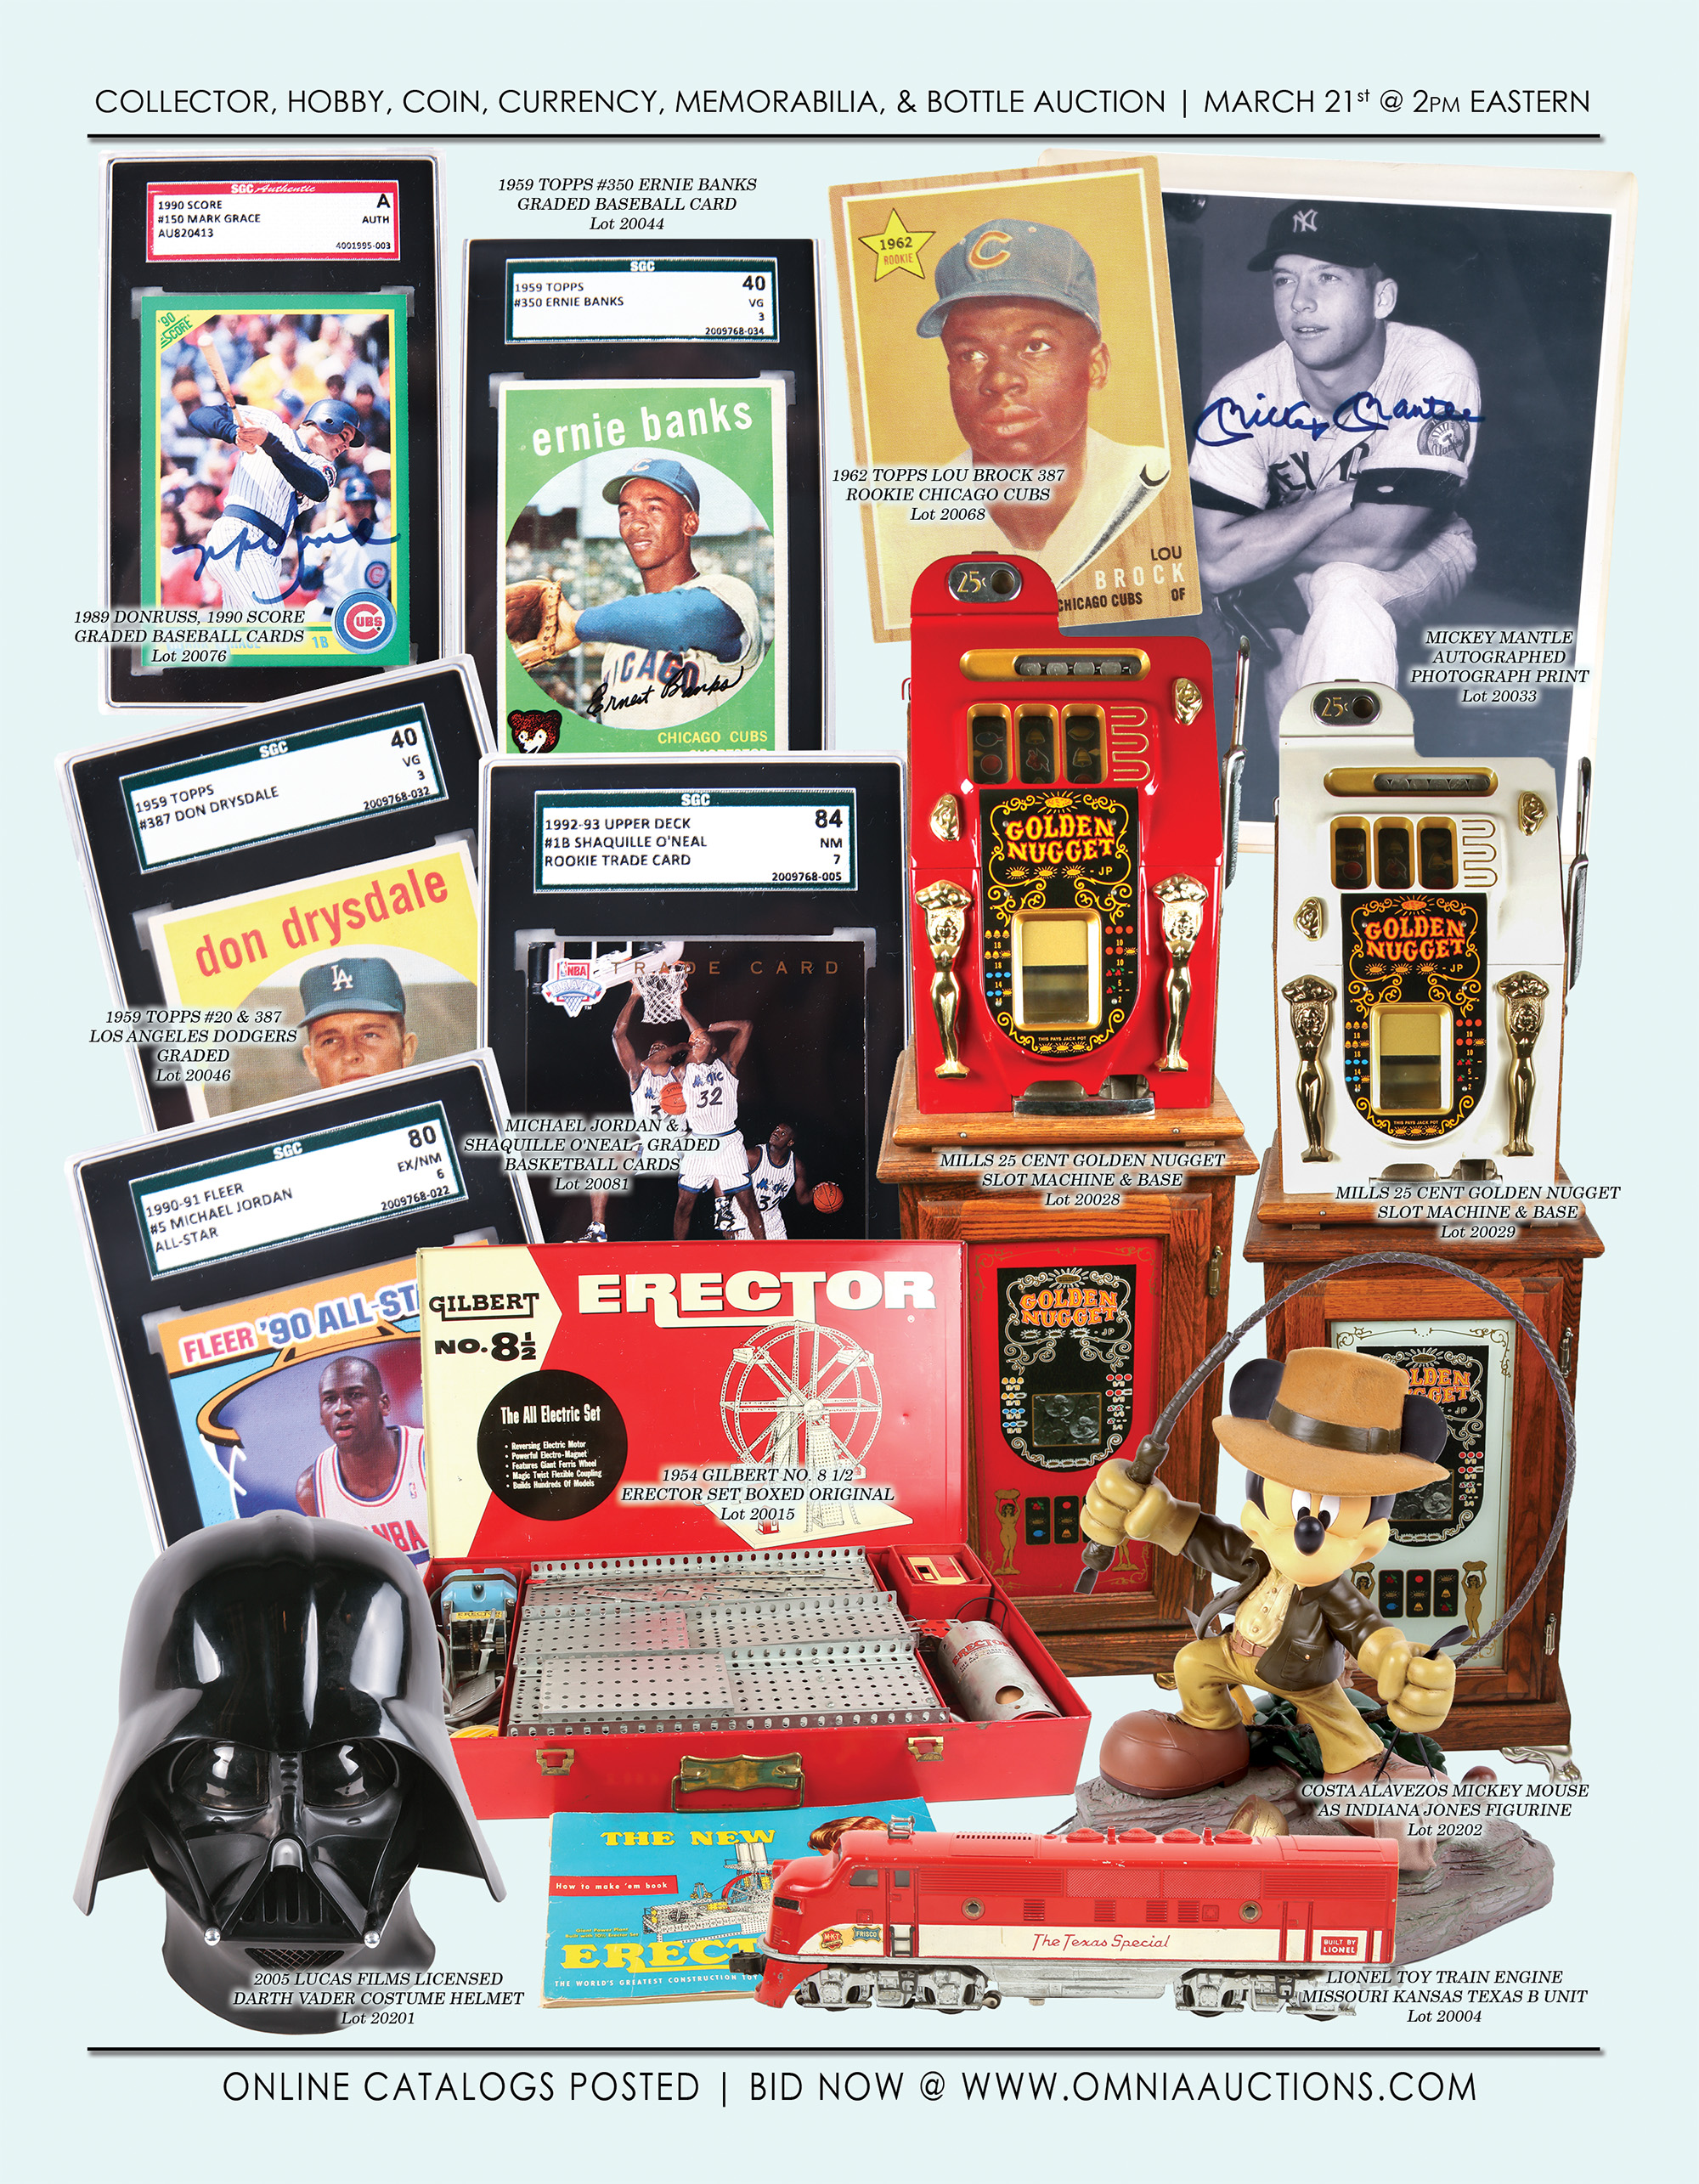 Collector, Hobby, Coin, Currency, Sport, Memorabilia & Bottle Auction - Baseball